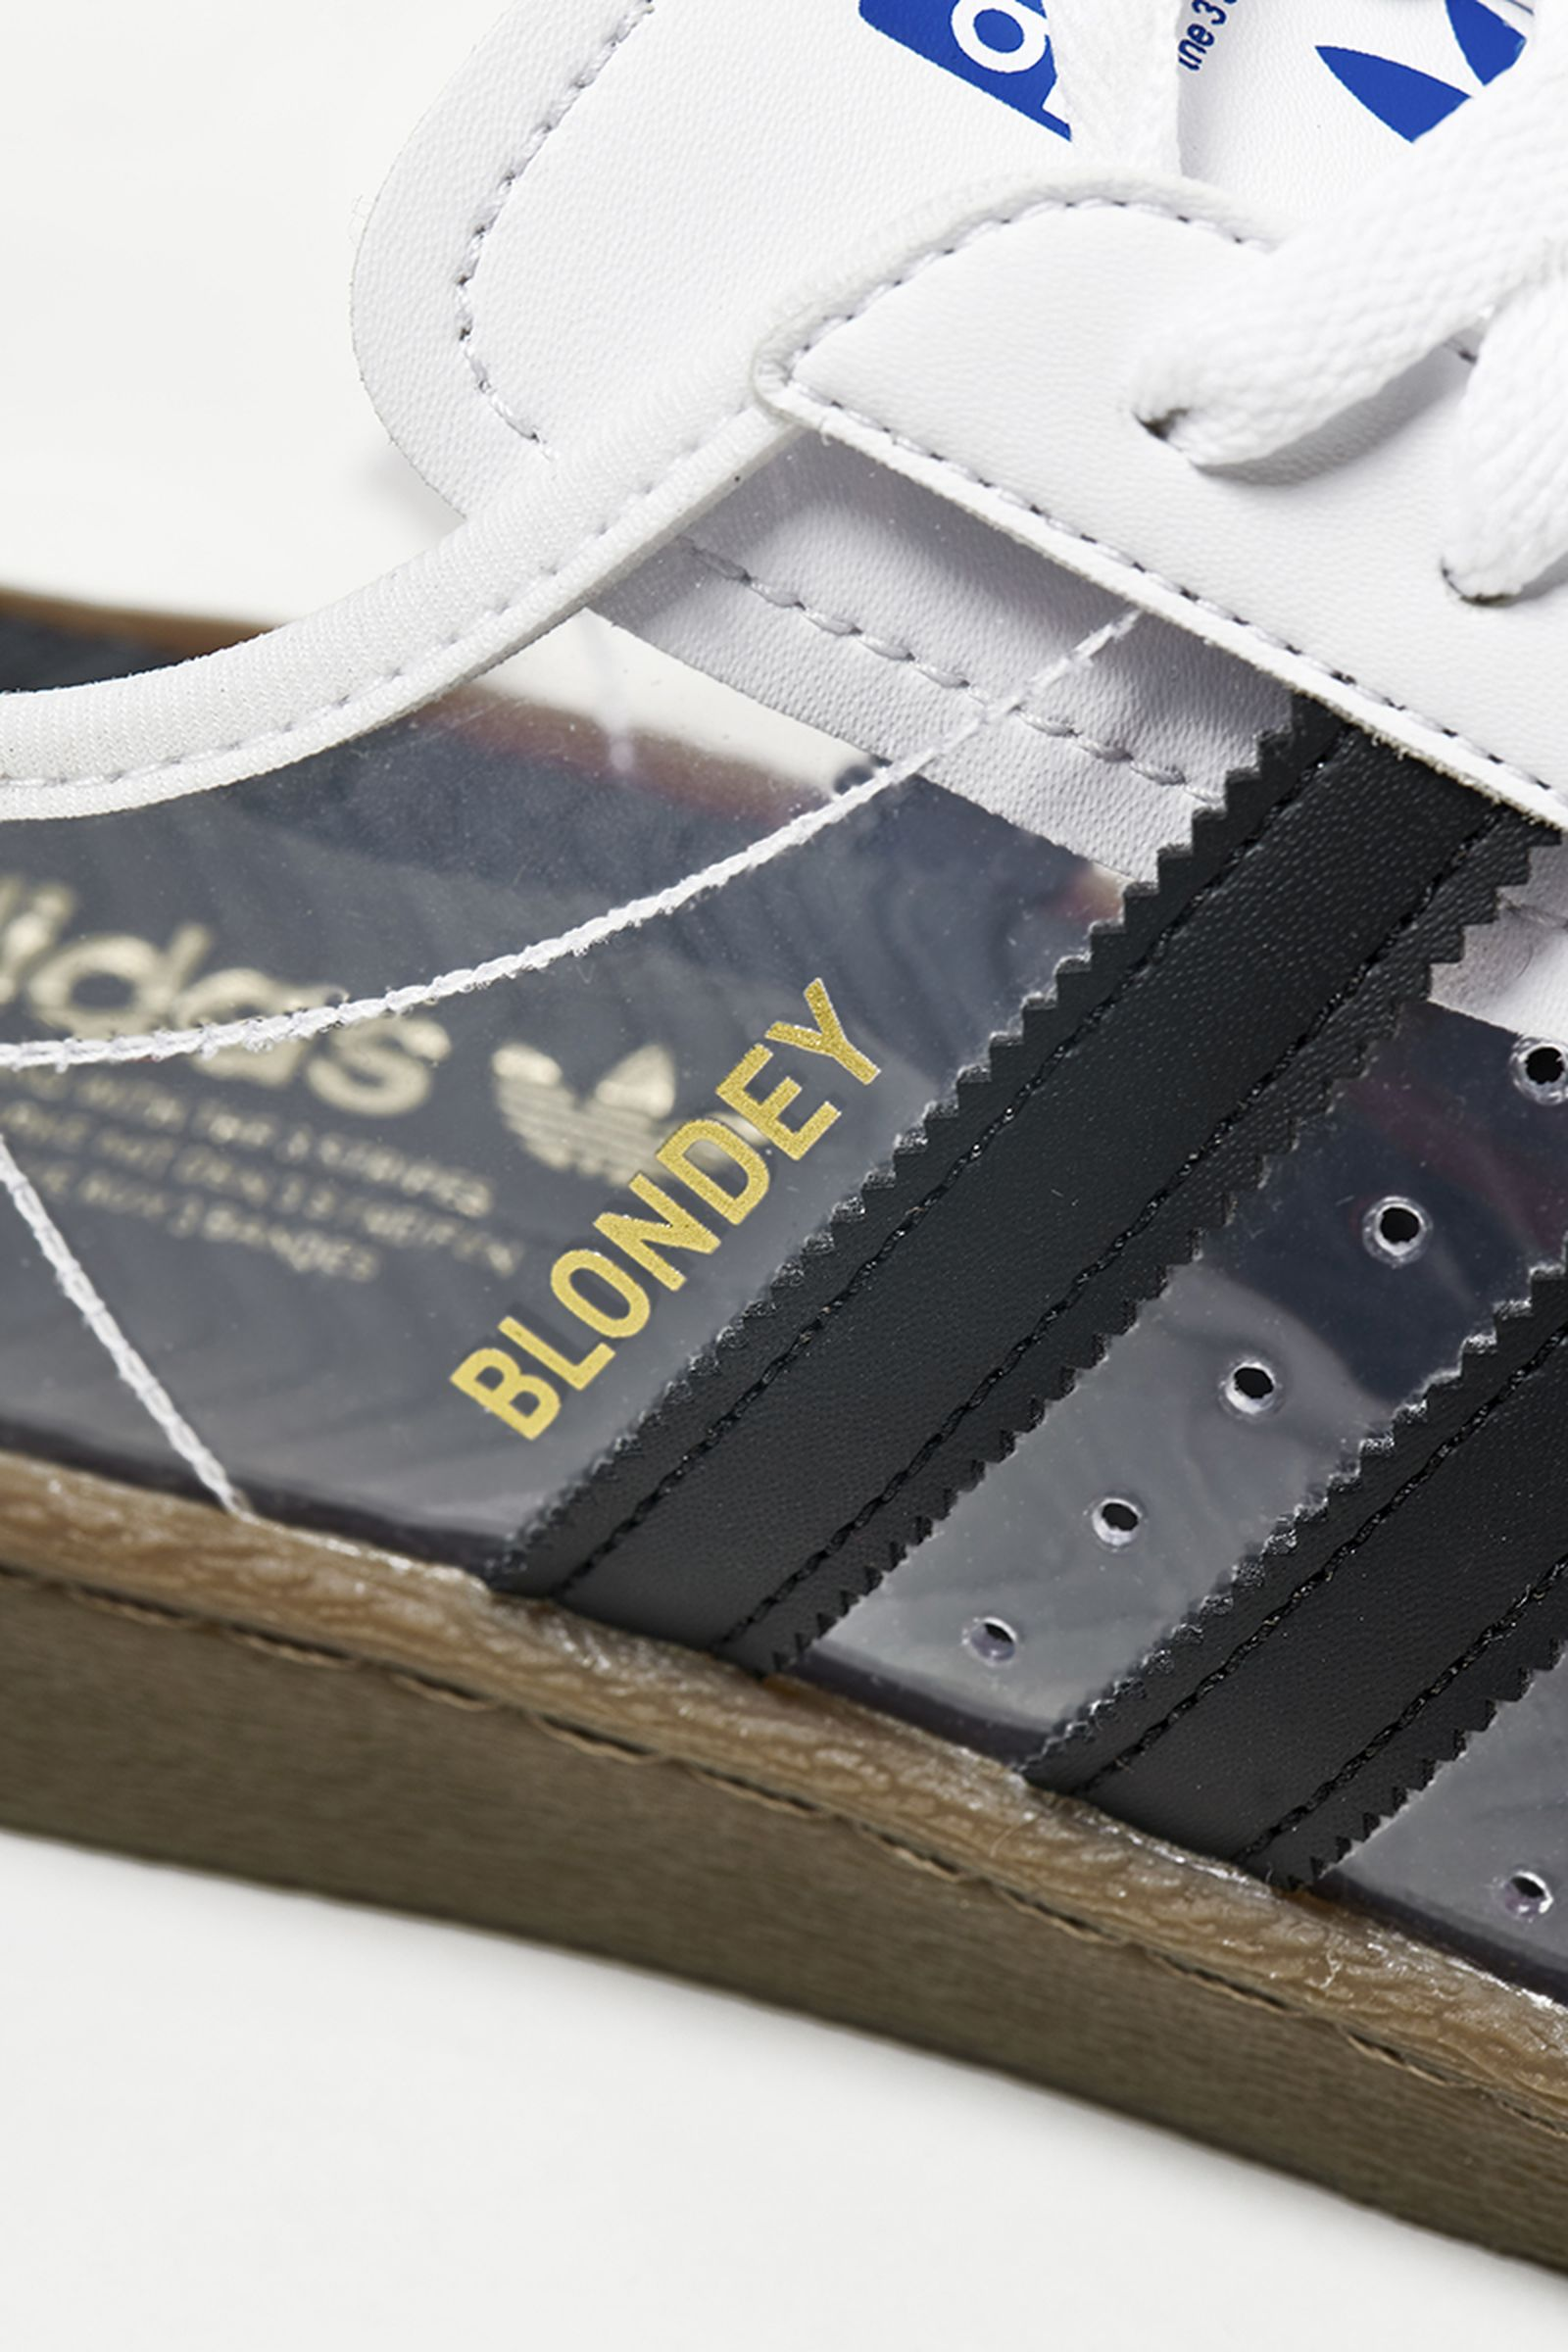 blondey-mccoy-adidas-superstar-80s-clear-release-date-price-1-05